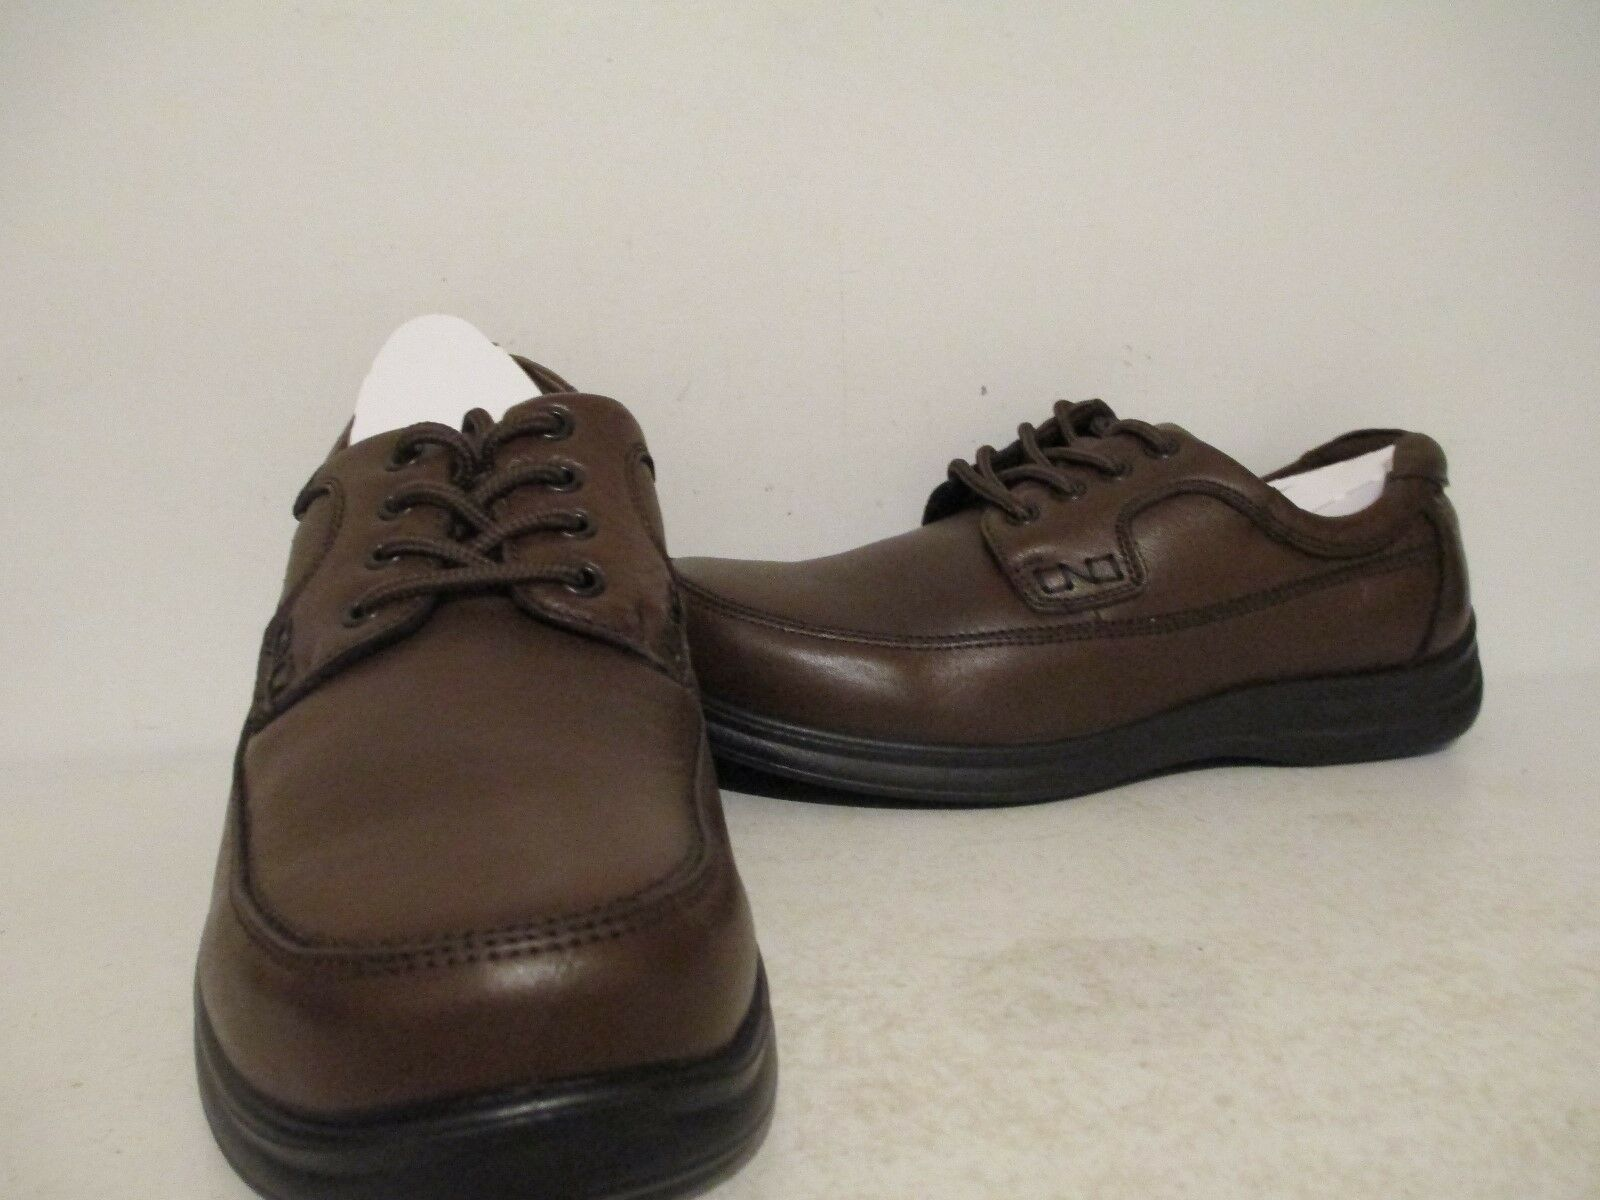 Nunn Bush Mens Mo 84564 Casual Dress Leather Oxfords Cognac Sizes 7 - 13 M - XW